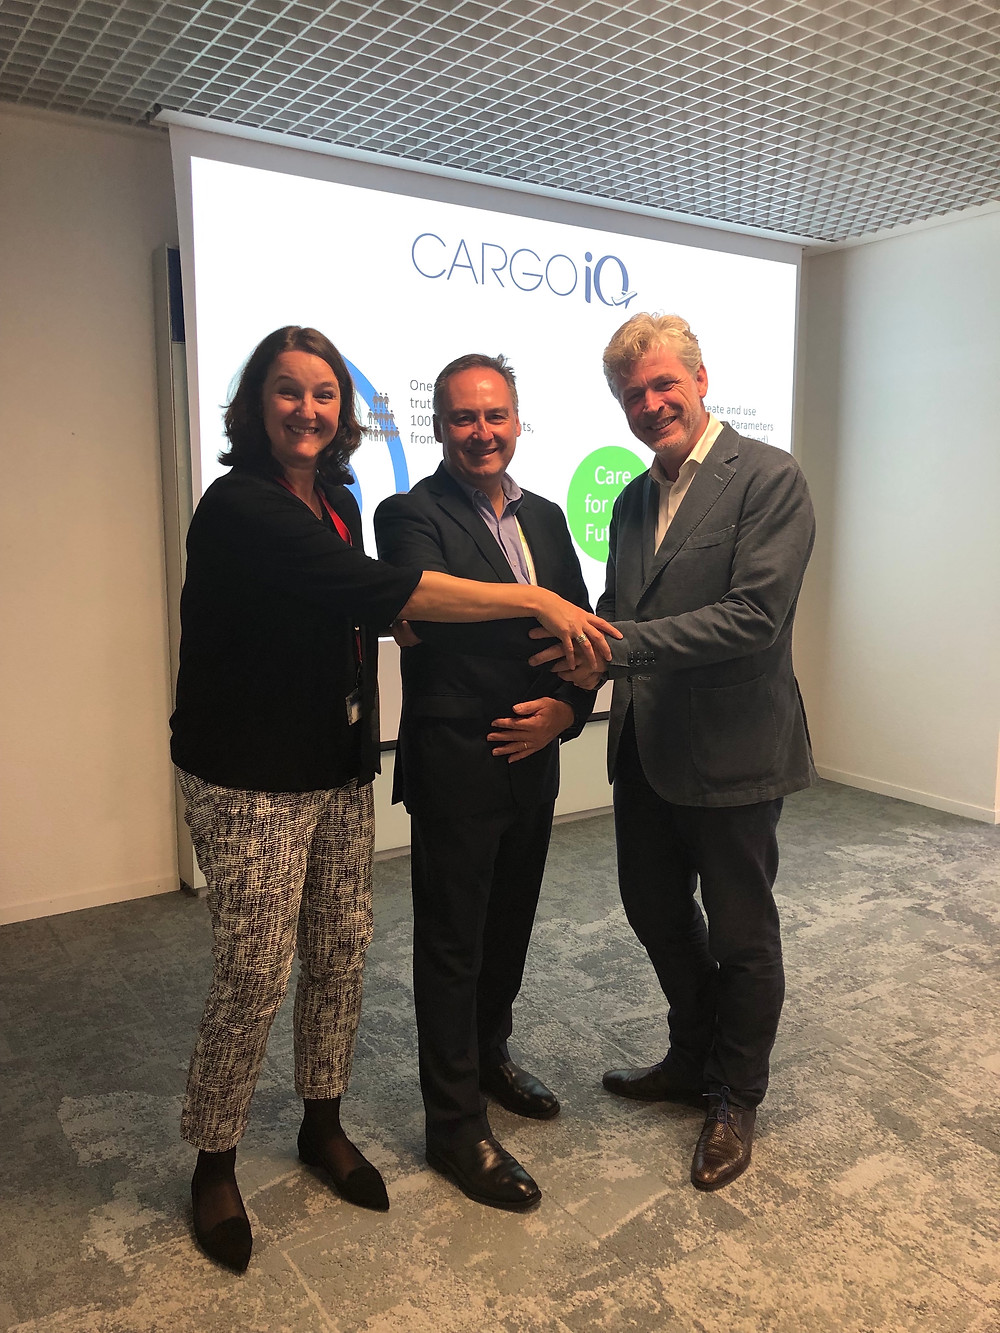 From left to right, Kerstin Strauss, VP Air Logistics Operations, Global Airfreight, Kuehne + Nagel; Scott McCorquodale, Chief Automation Officer, Air Cargo, WiseTech Global; Ariaen Zimmerman, Executive Director, Cargo iQ.